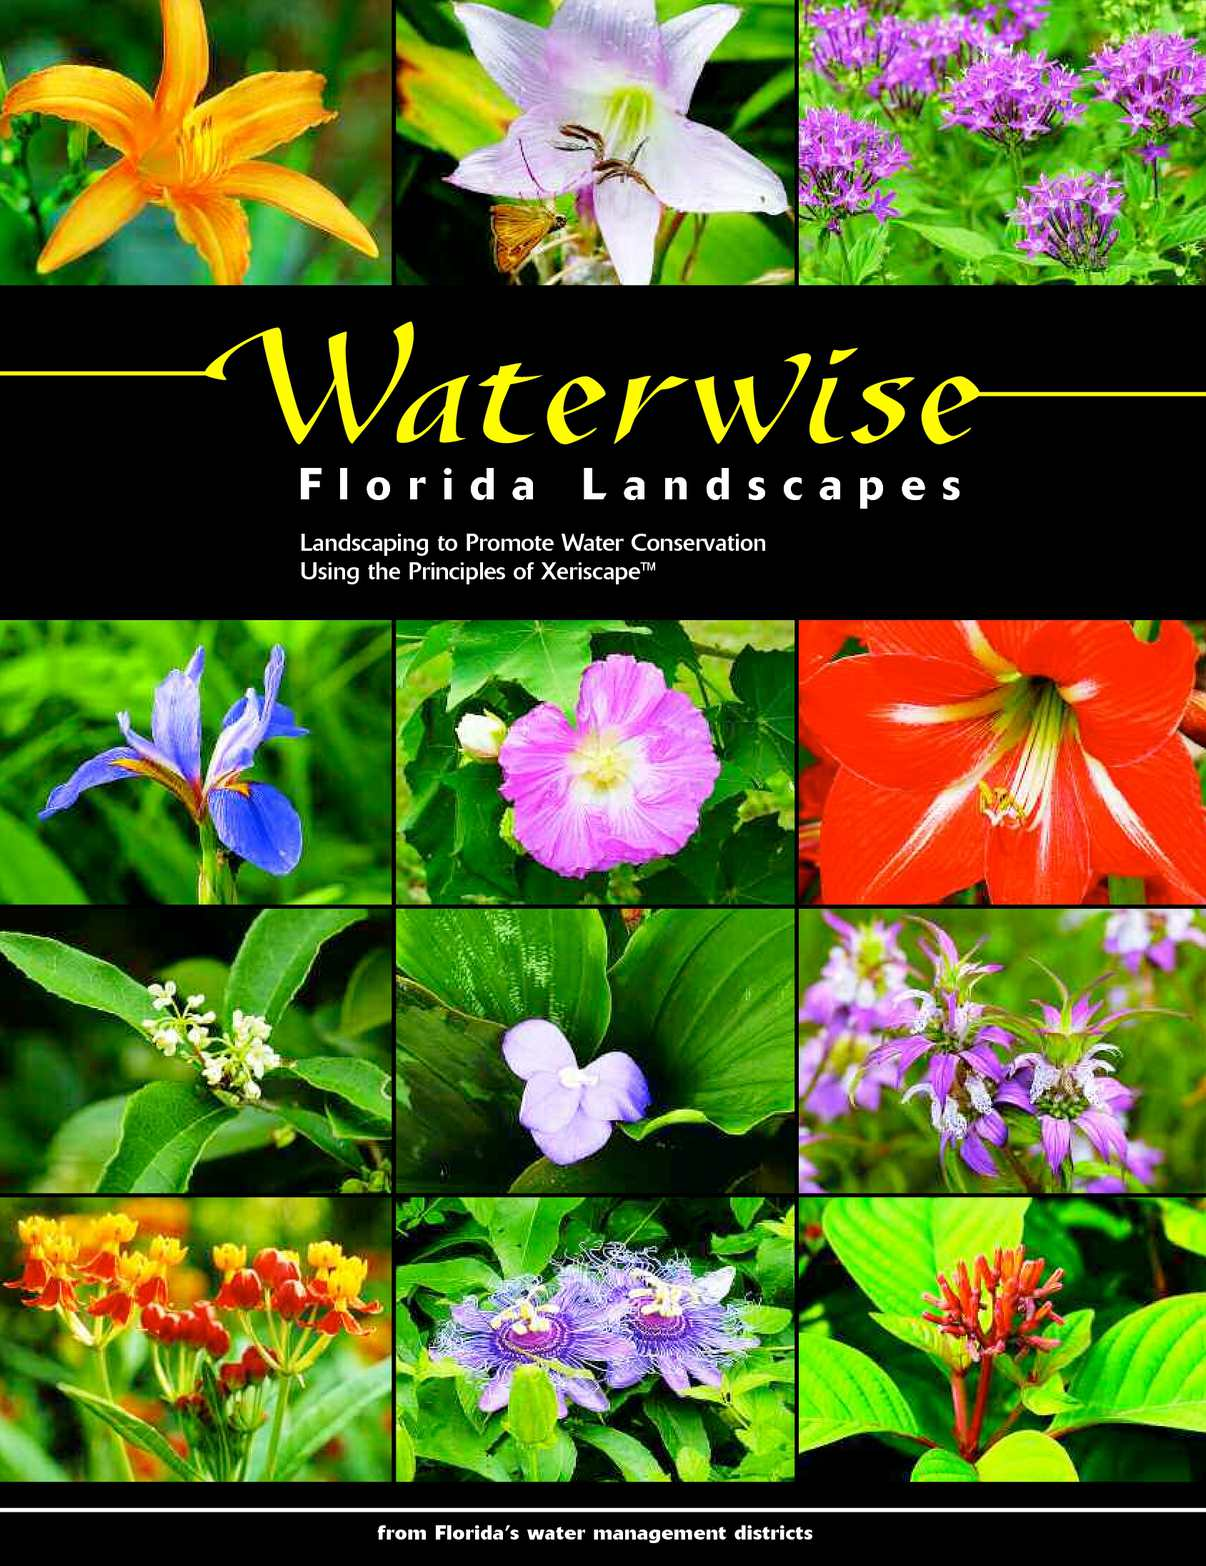 Calameo Waterwise Florida Landscapes Landscaping To Promote Water Conservation Using The Principles Of Xeriscape